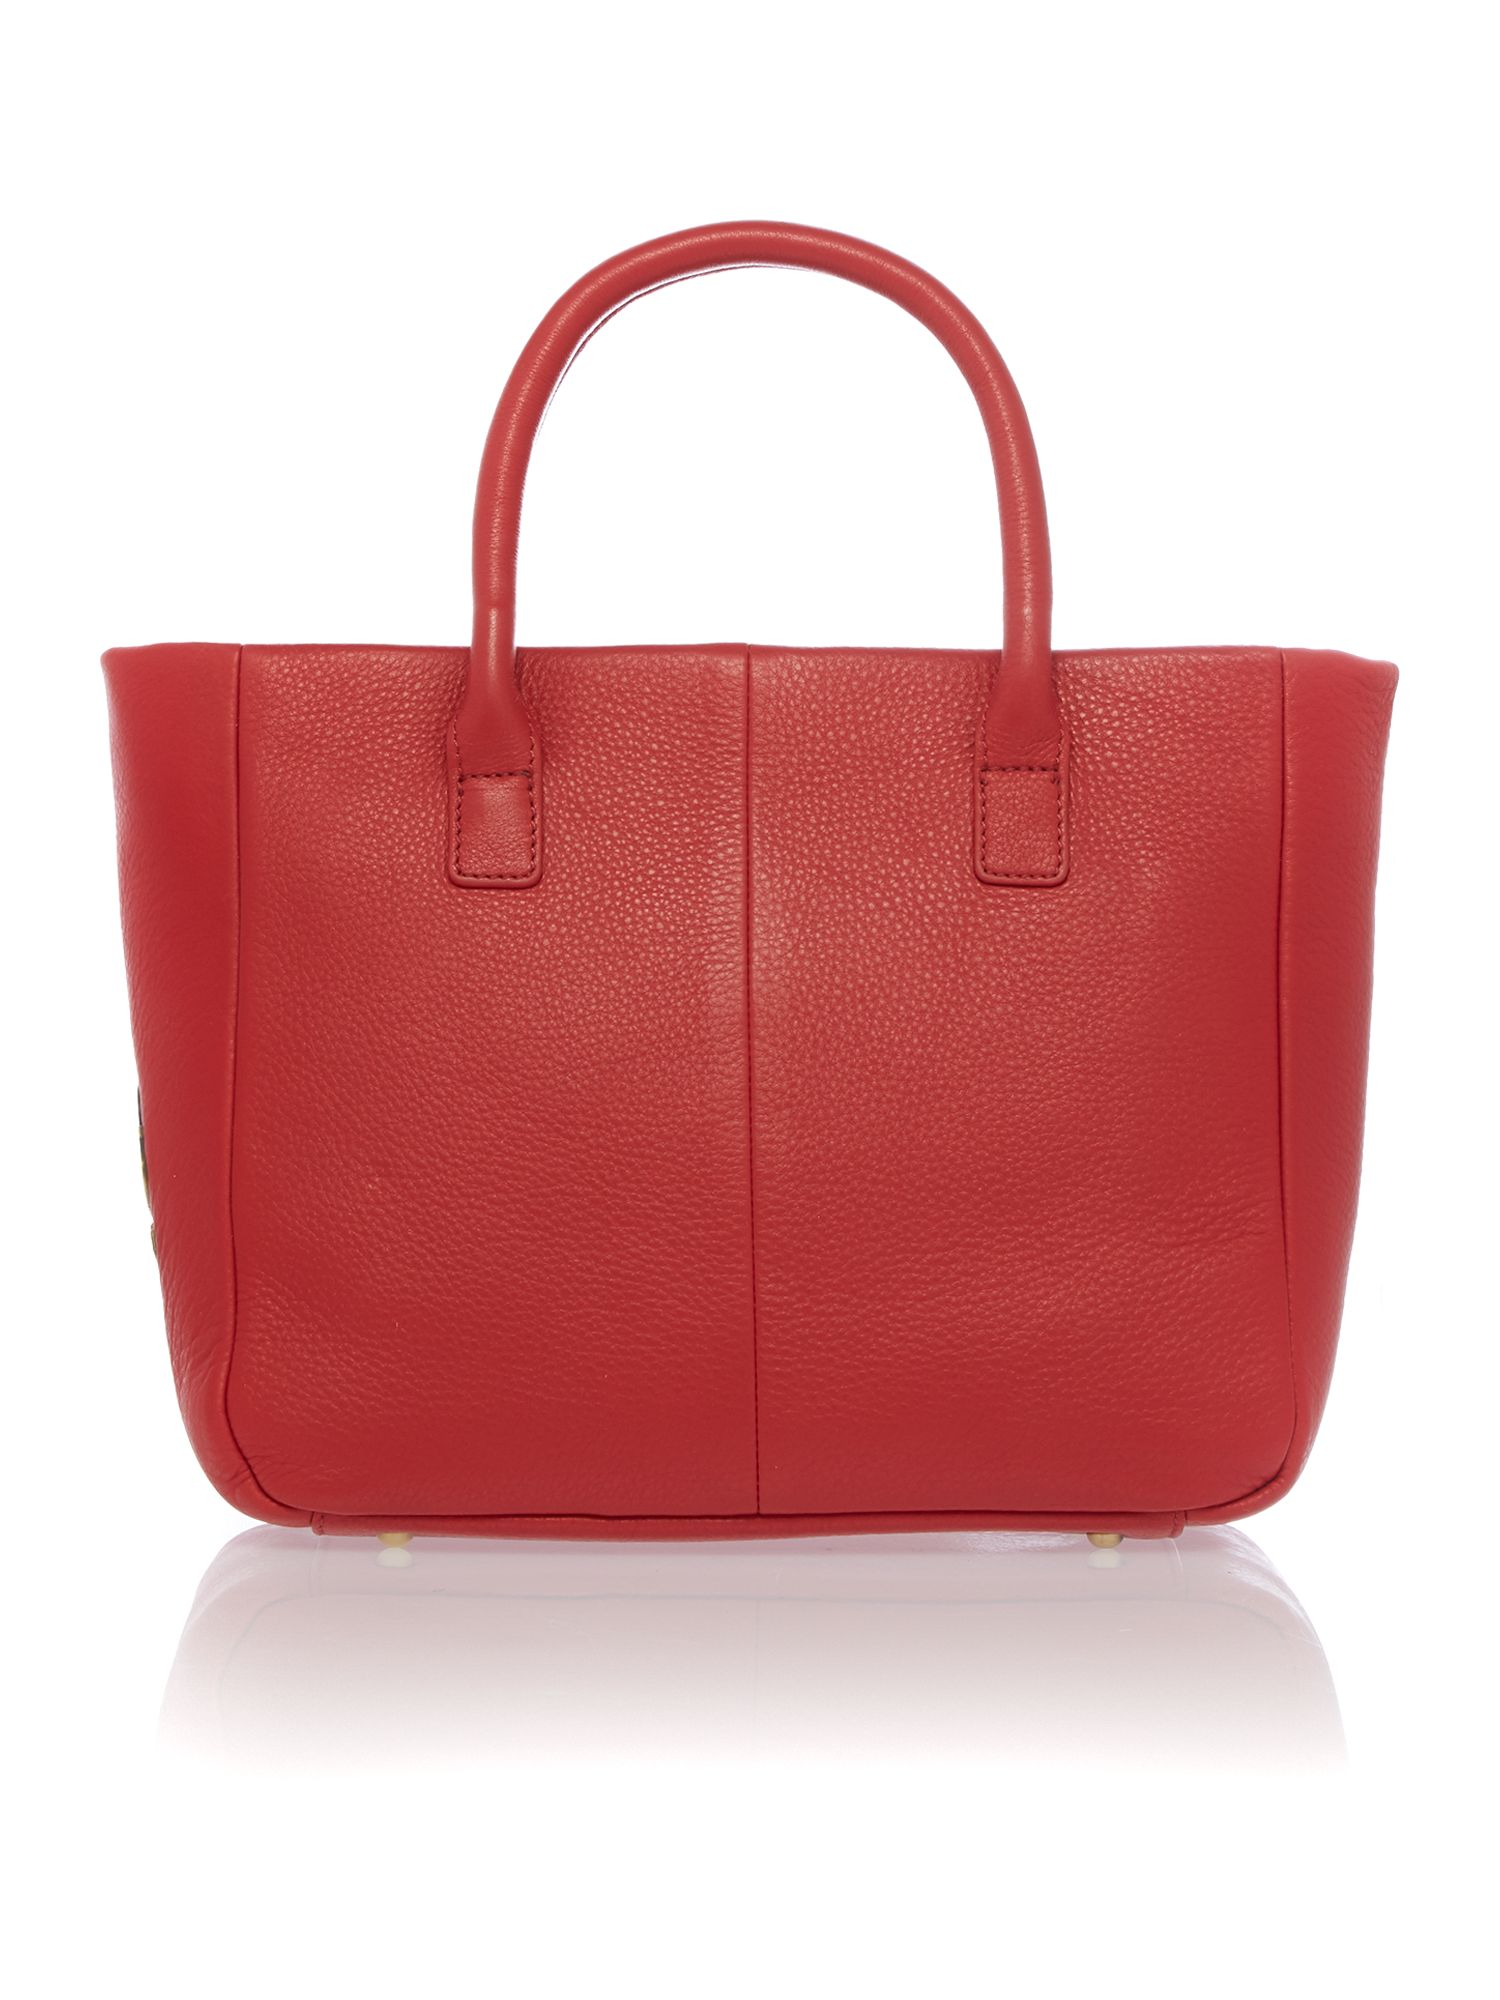 Murch Marcle red tote bag